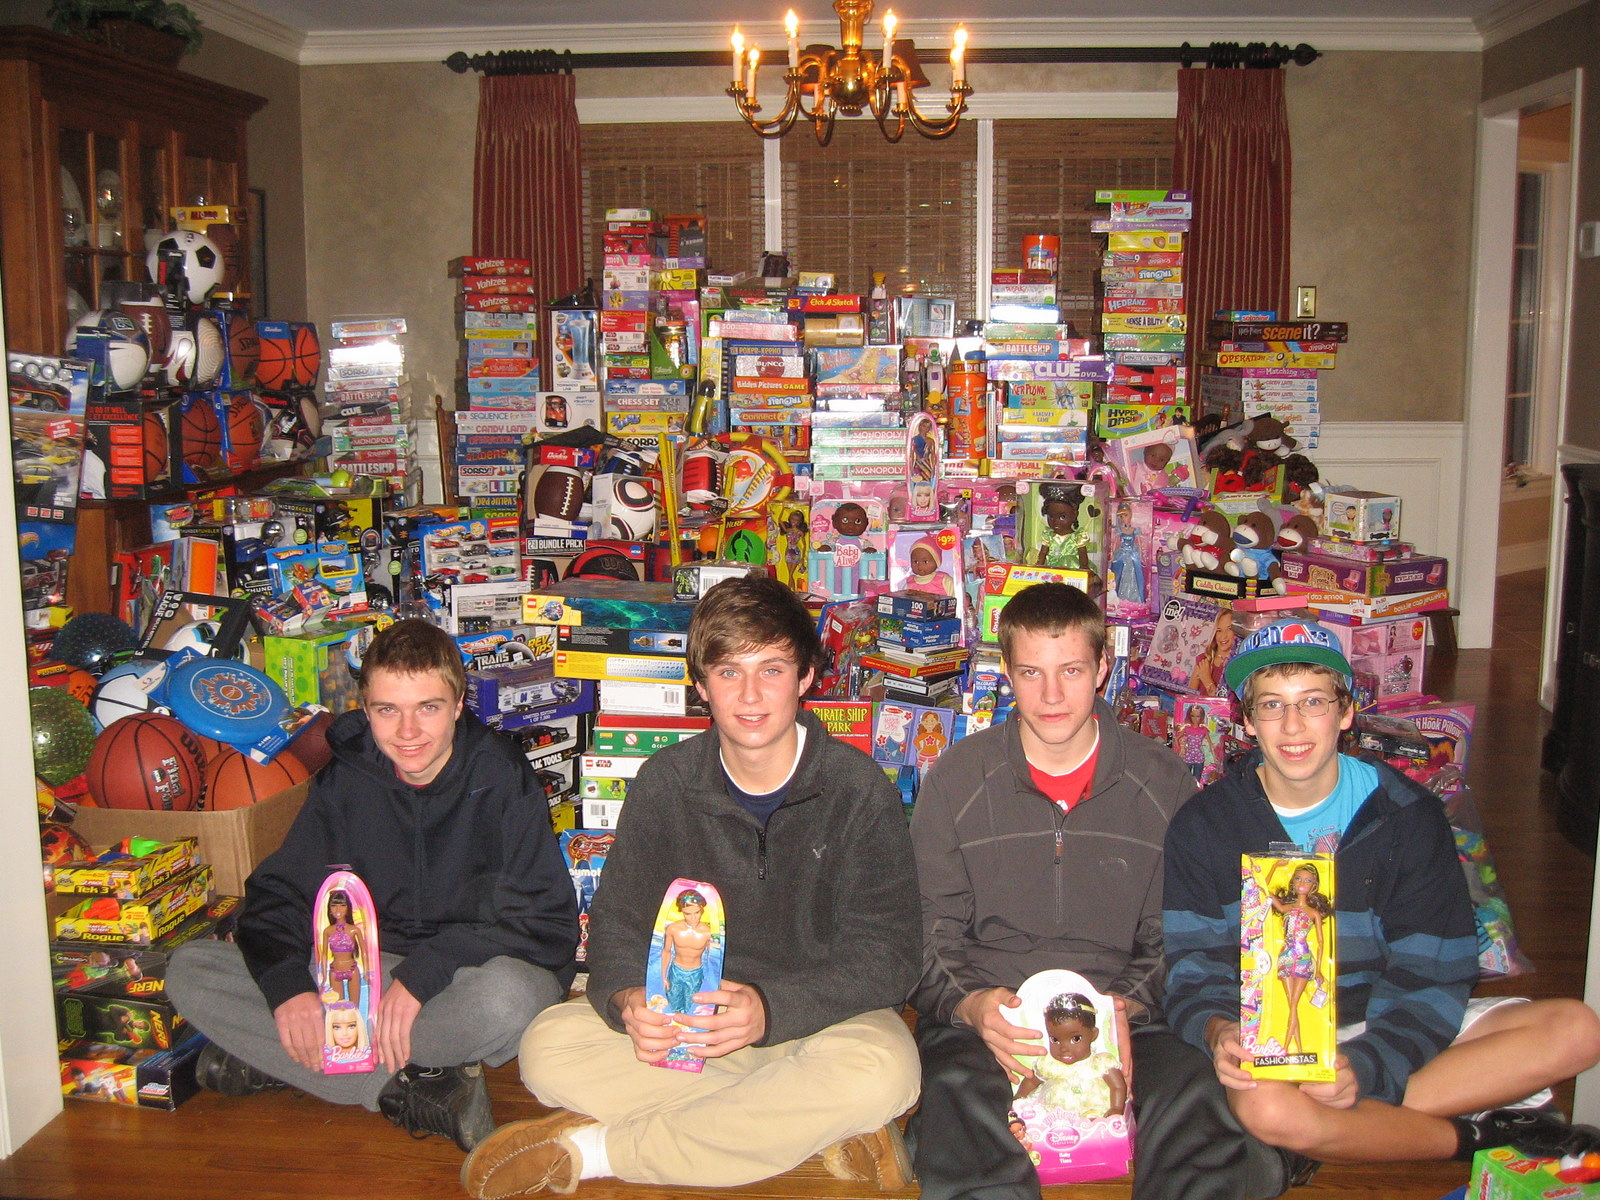 Toys For Age 12 : Andrew l hicks jr foundation christmas toy store